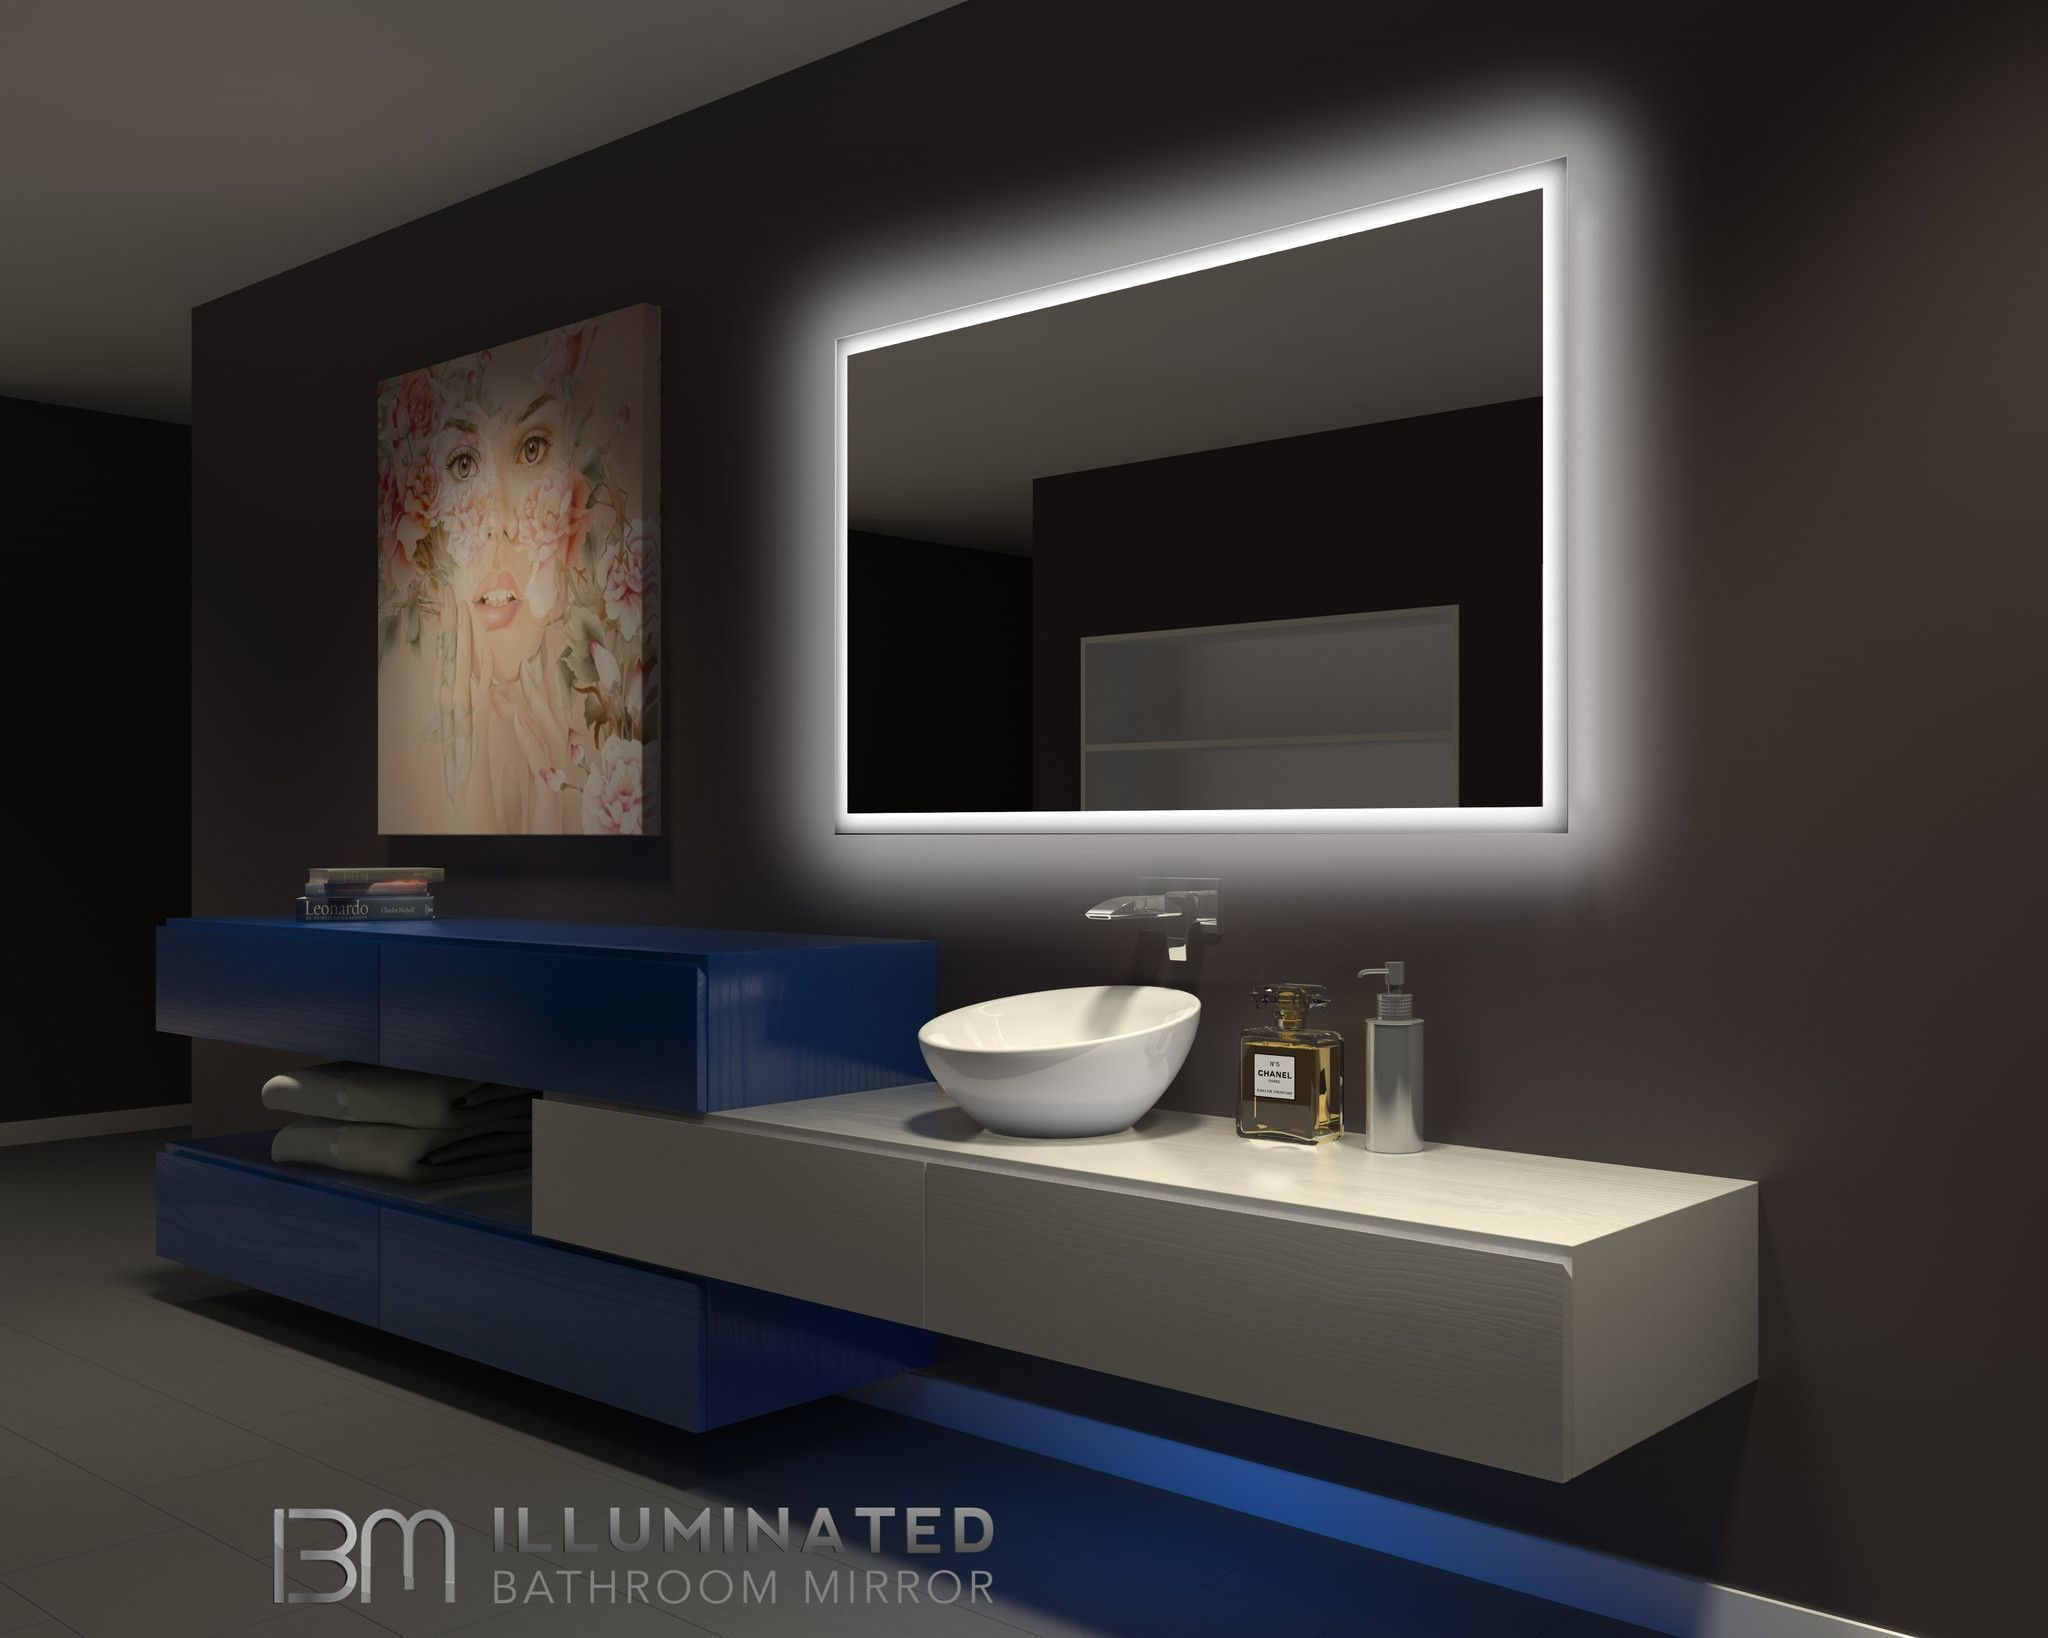 Dimmable Backlit Mirror Rectangle 60 X 36 Backlit Mirror Backlit Bathroom Mirror Illuminated Mirrors